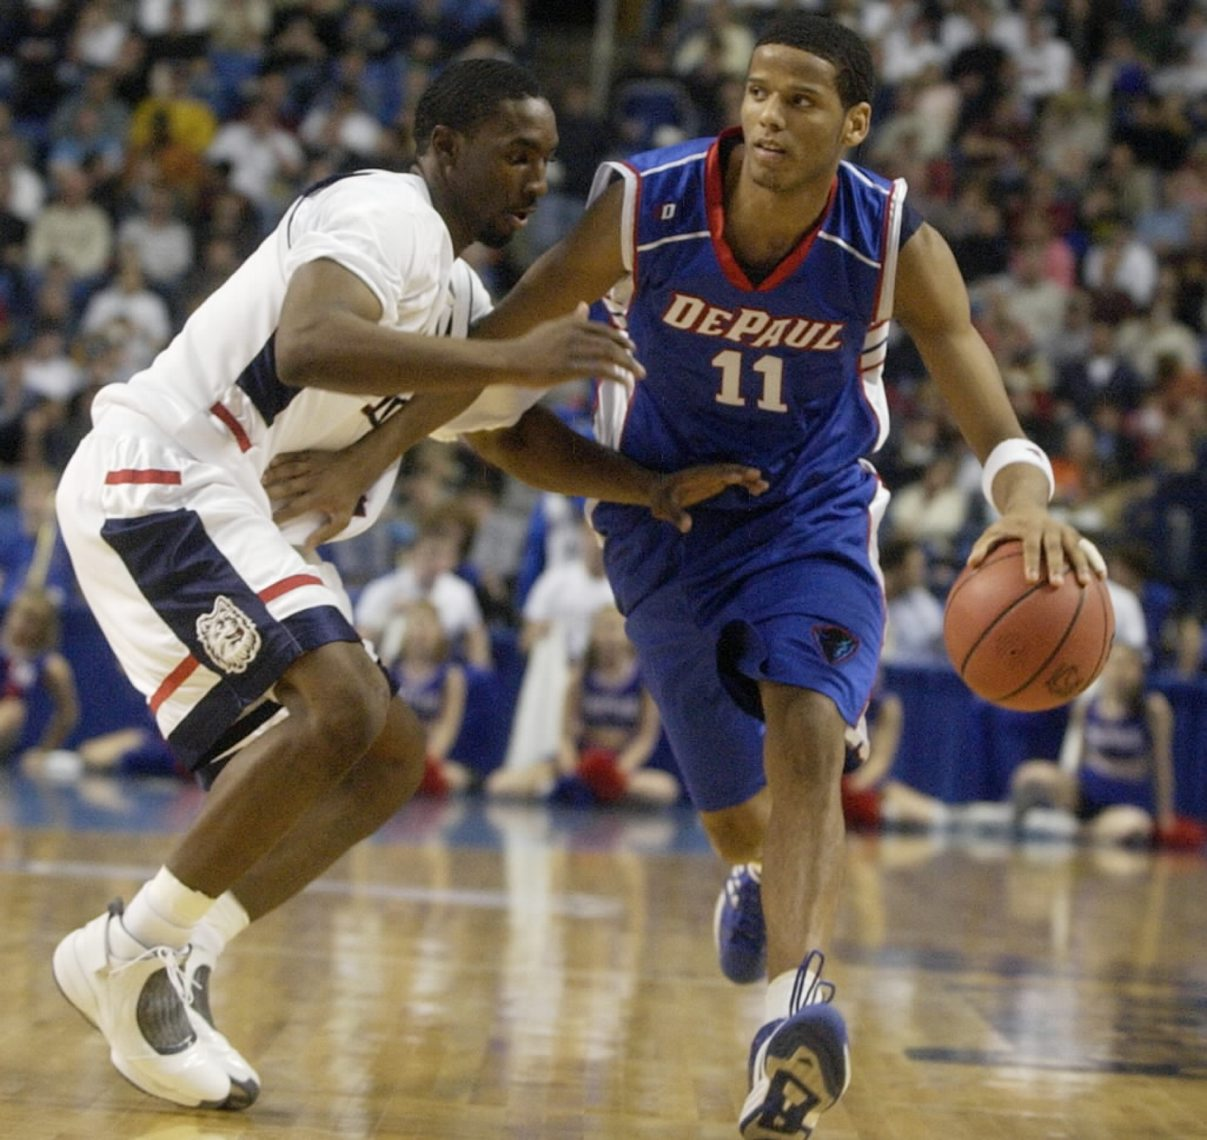 UConn's Ben Gordon guards Depaul's Sammy Mejia. (John Hickey/Buffalo News)